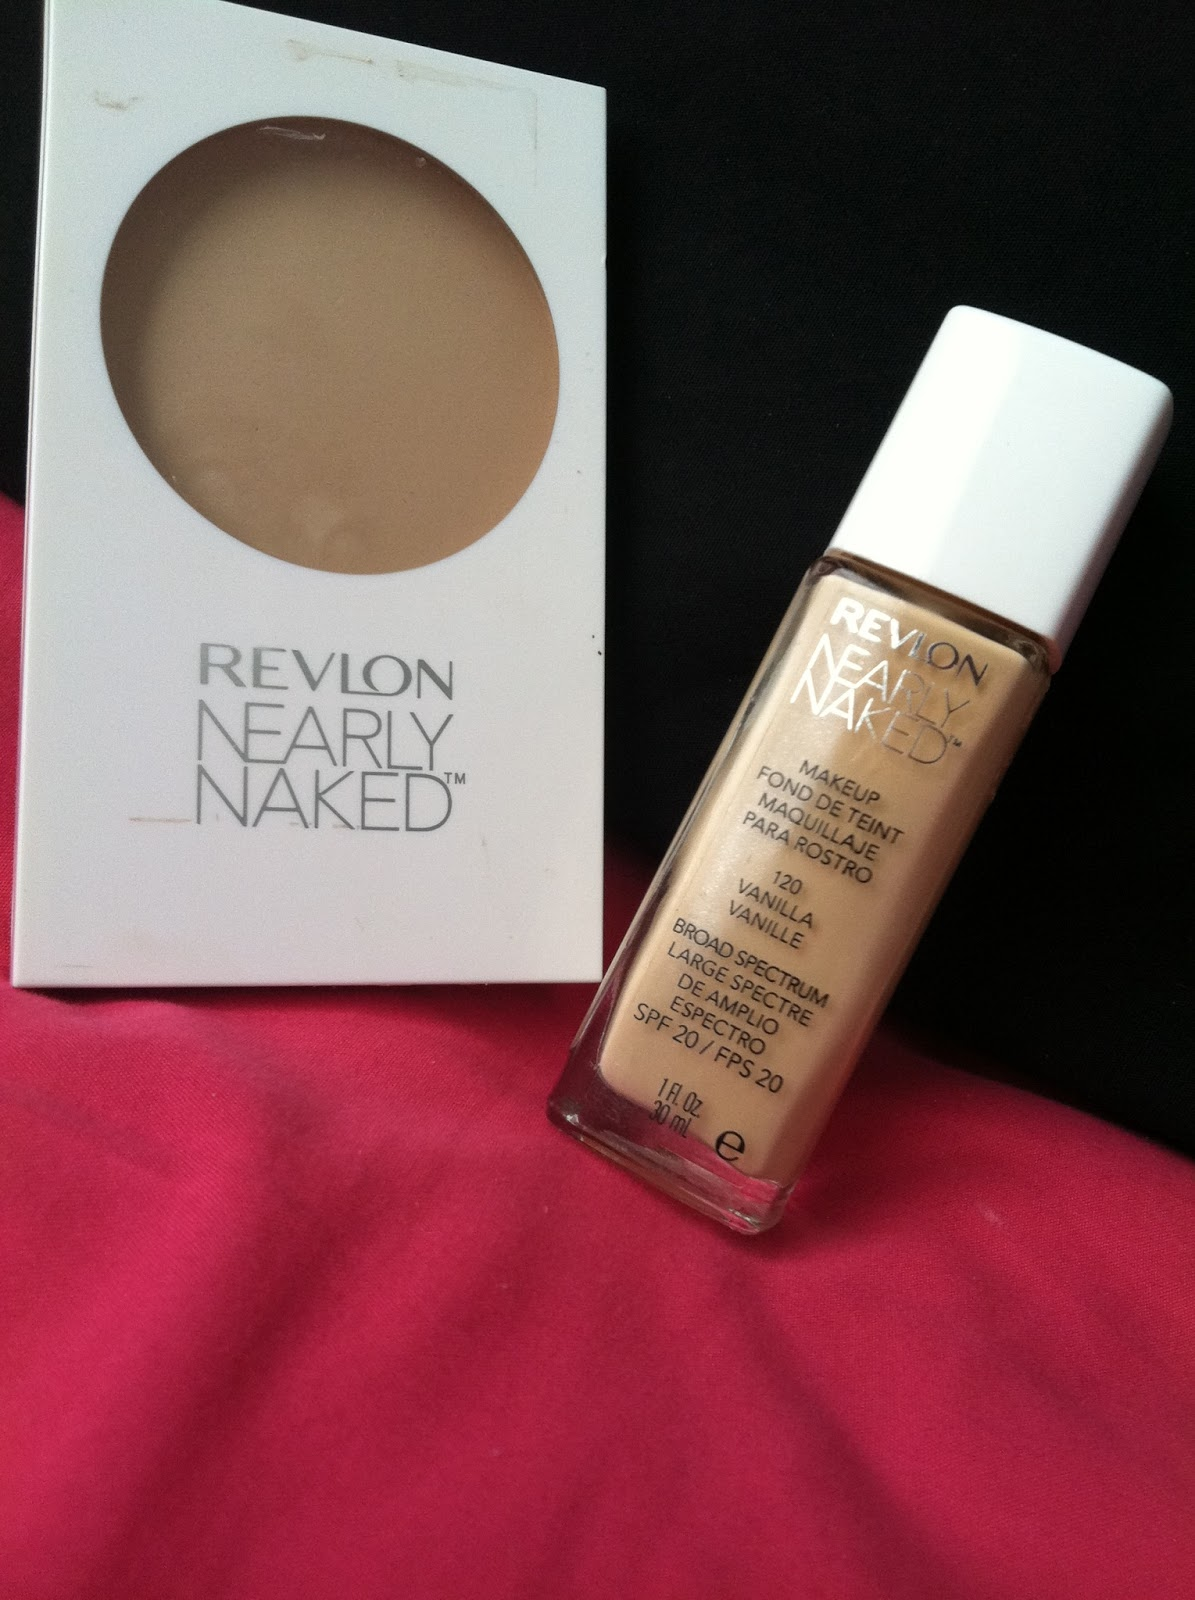 The Glossy Life: Review of Revlons Nearly Naked